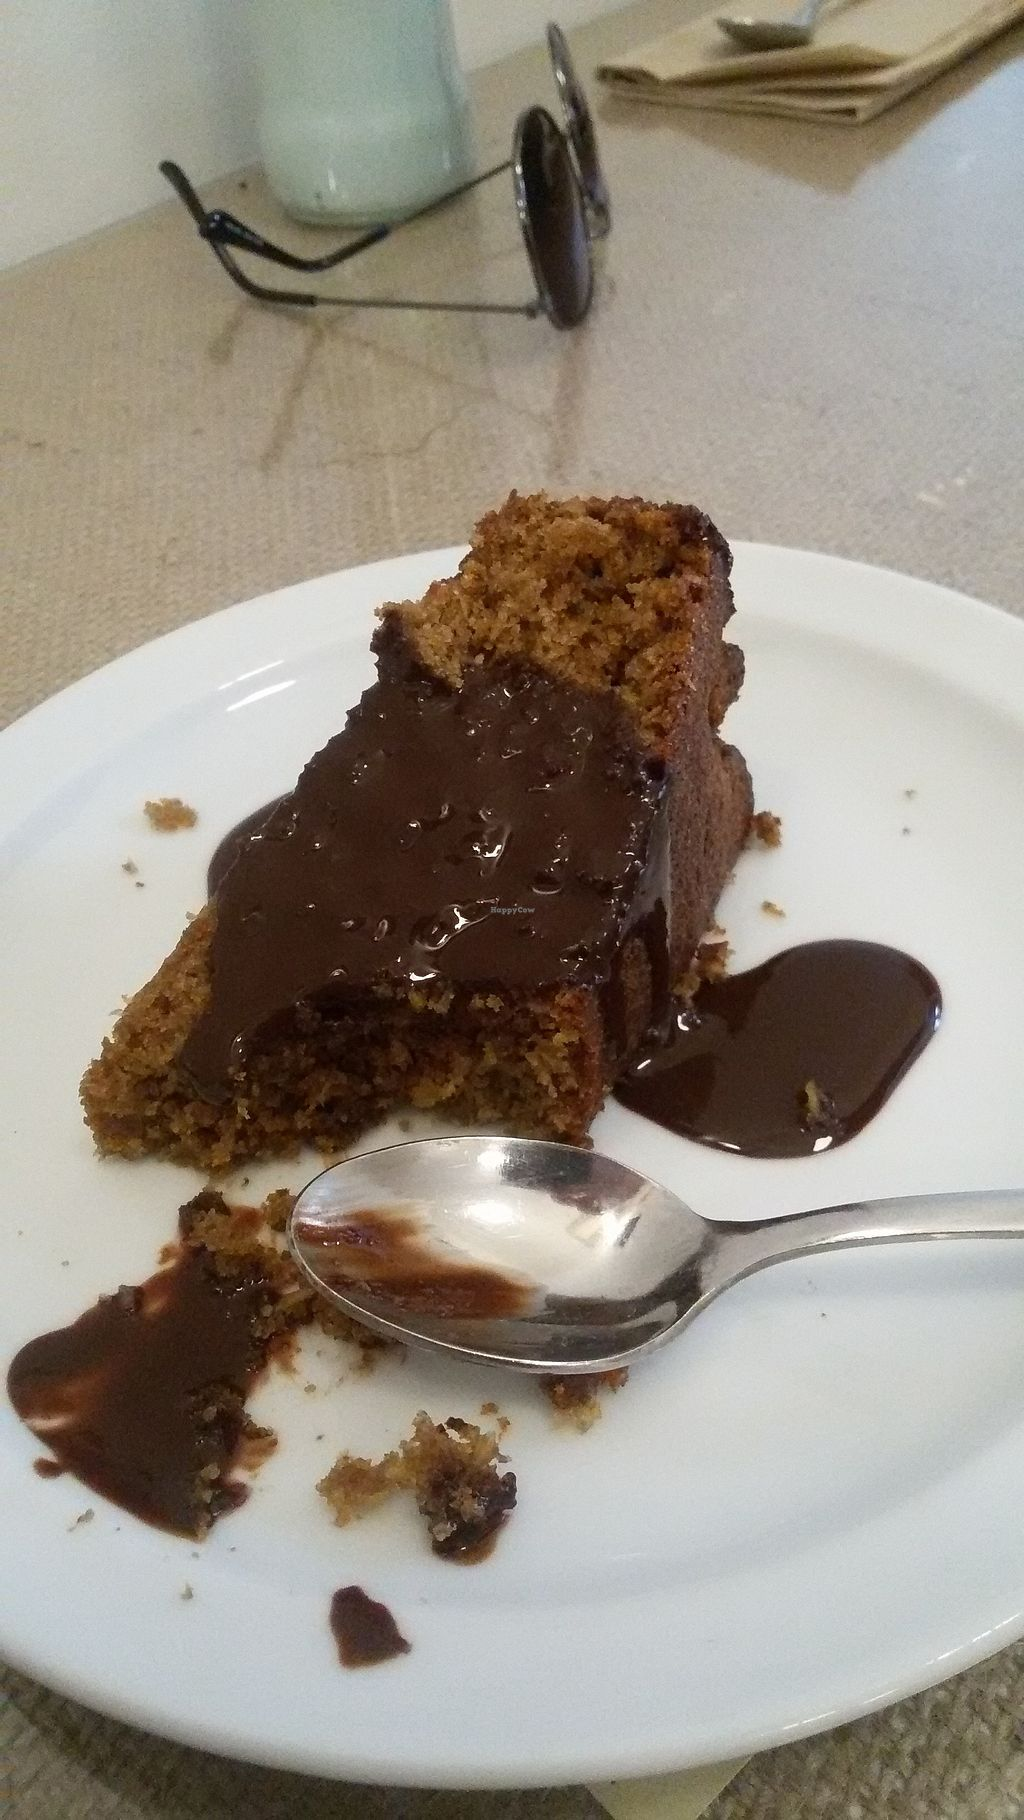 """Photo of El Fogon Verde  by <a href=""""/members/profile/Palmapiteira"""">Palmapiteira</a> <br/>Vegan coconut and chocolate Cake.  <br/> September 14, 2017  - <a href='/contact/abuse/image/76468/304508'>Report</a>"""